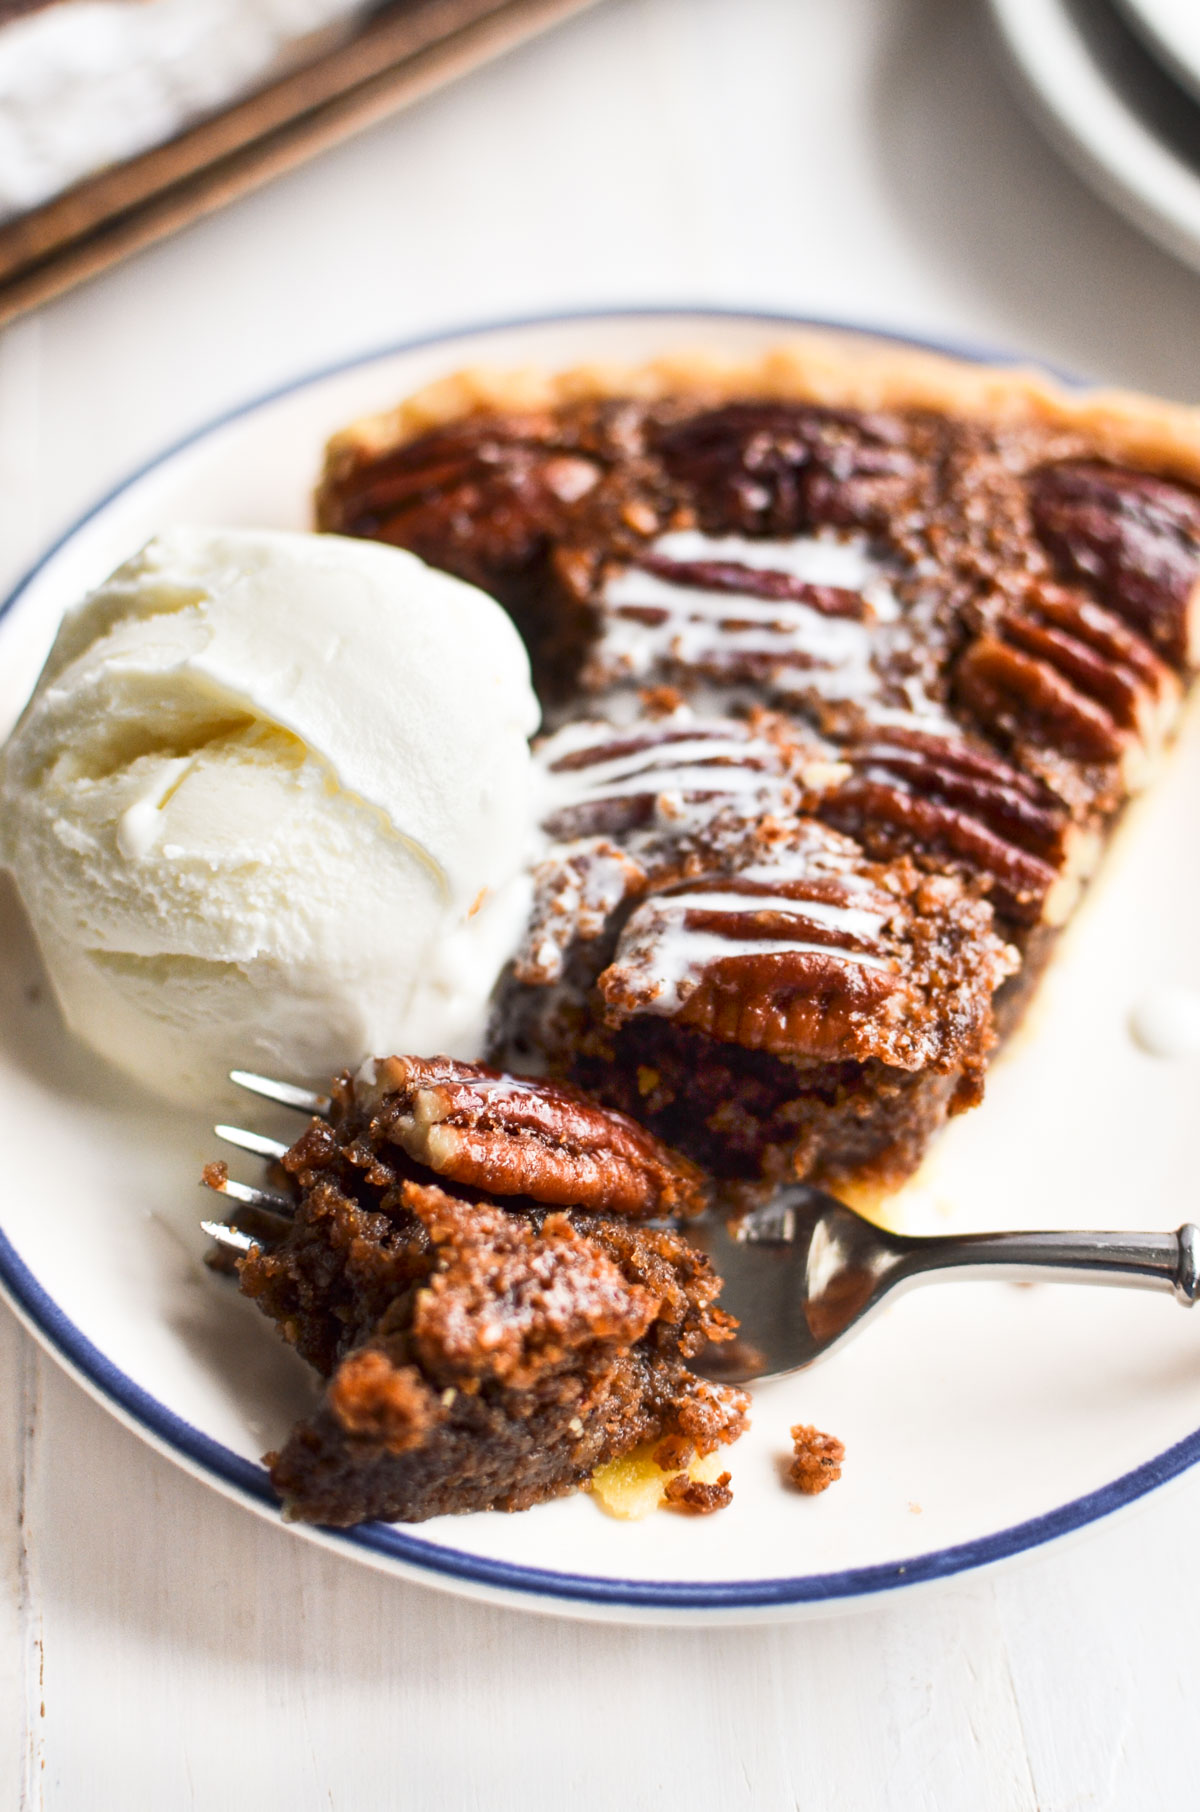 A piece of pecan pie with ice cream and fork